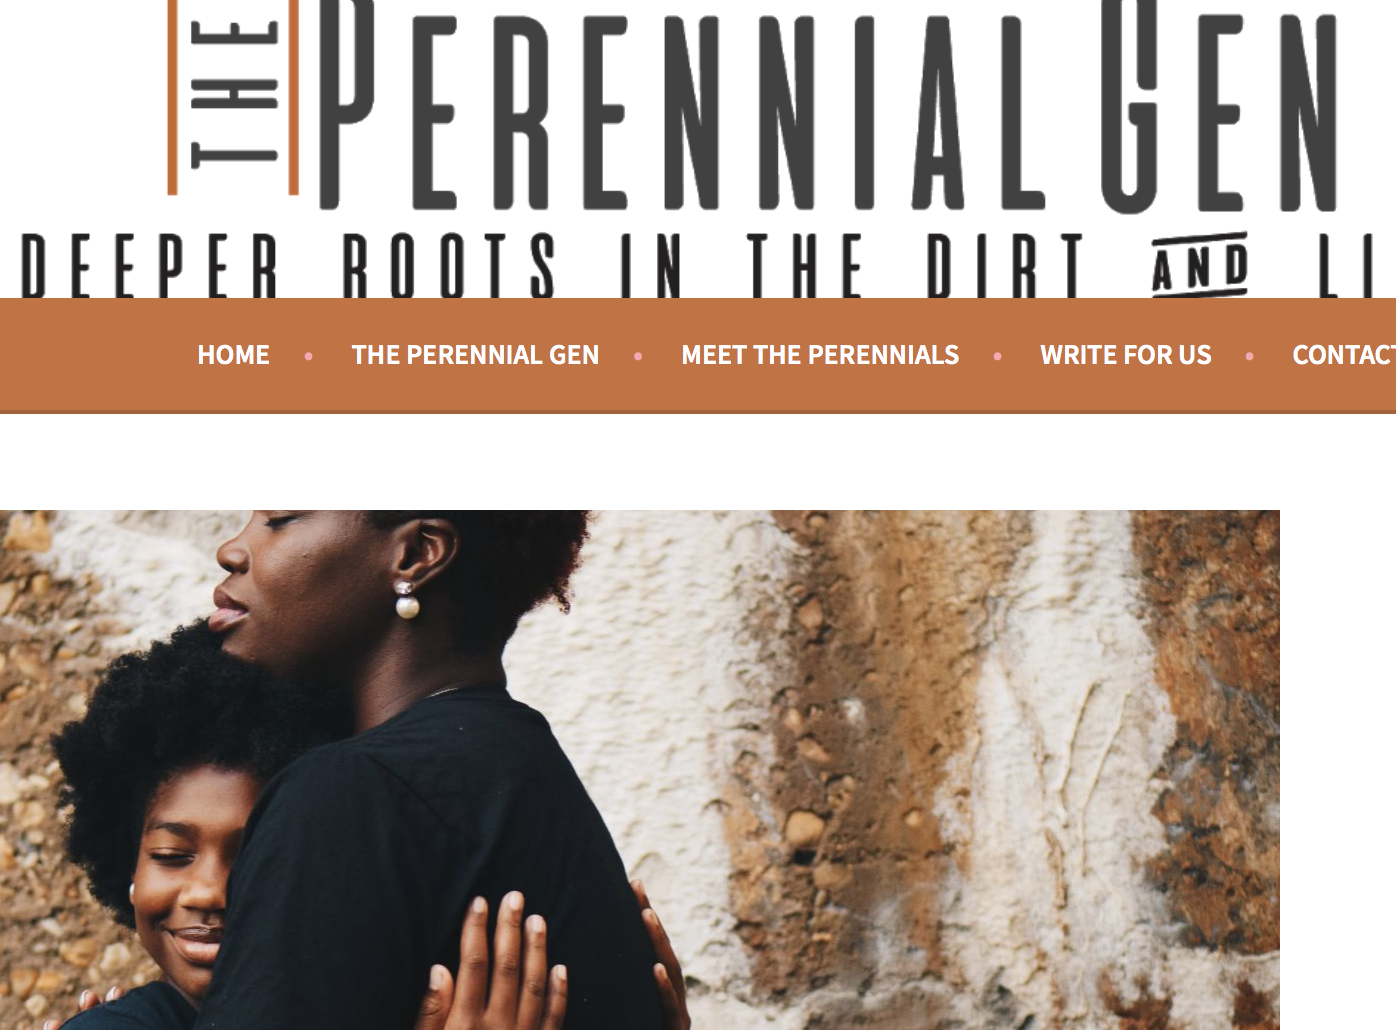 featured in the Perennial Gen